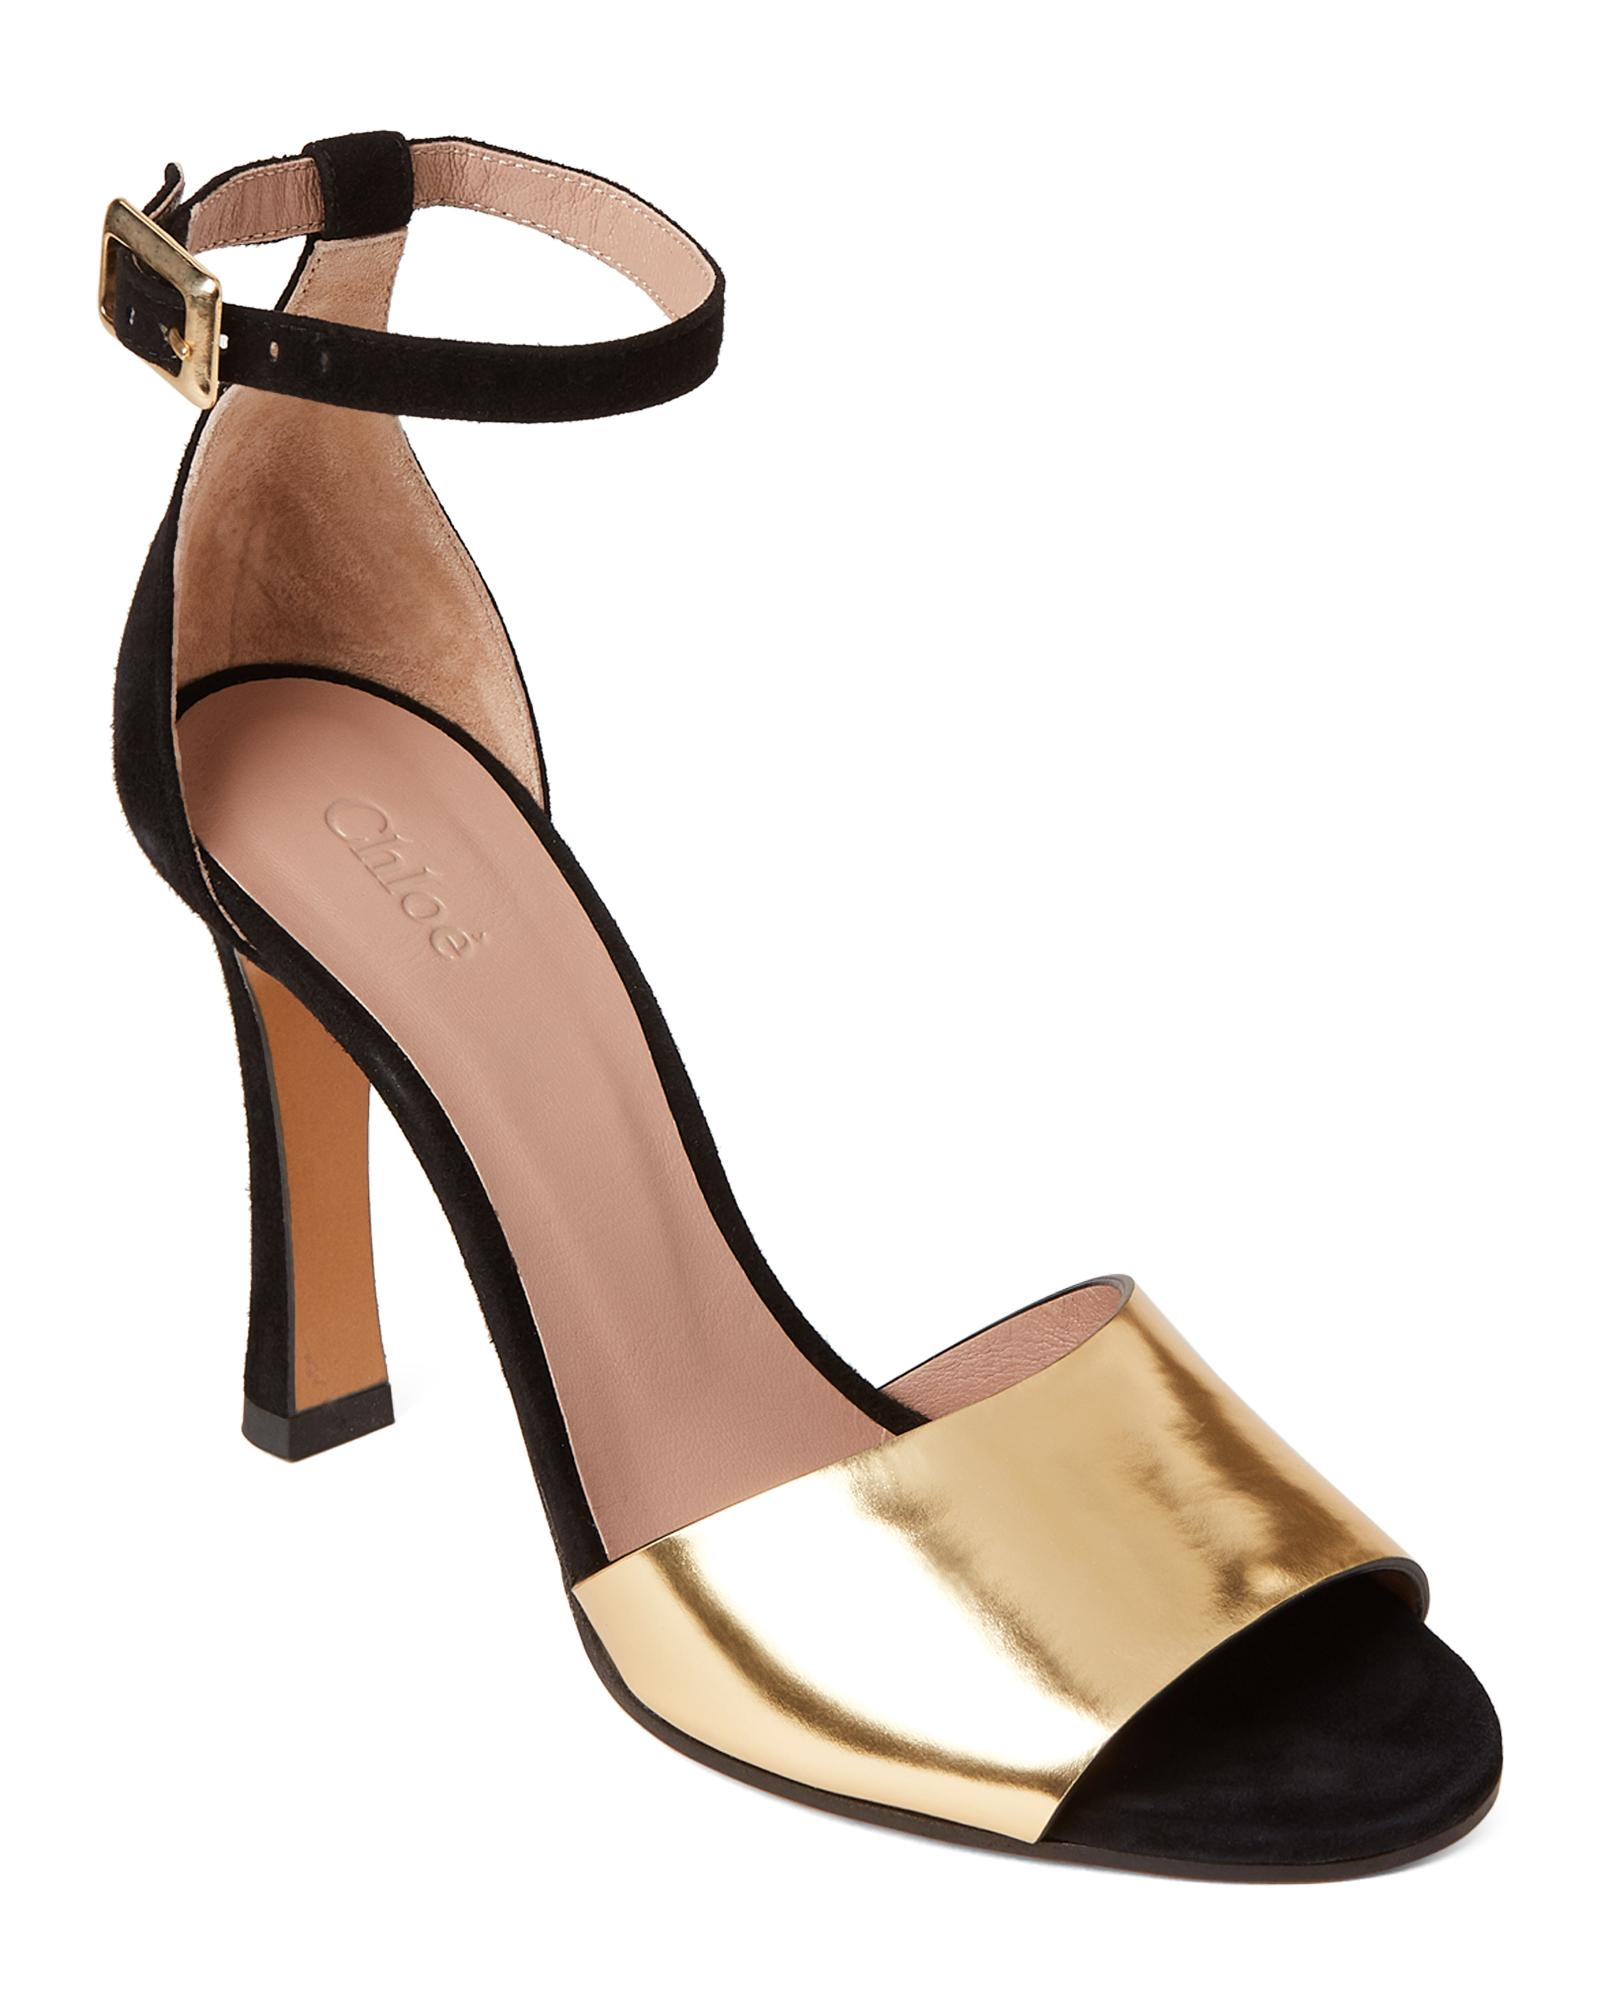 8defd410ee3d Lyst - Chloé Black   Gold Ankle Strap Suede Pumps in Metallic